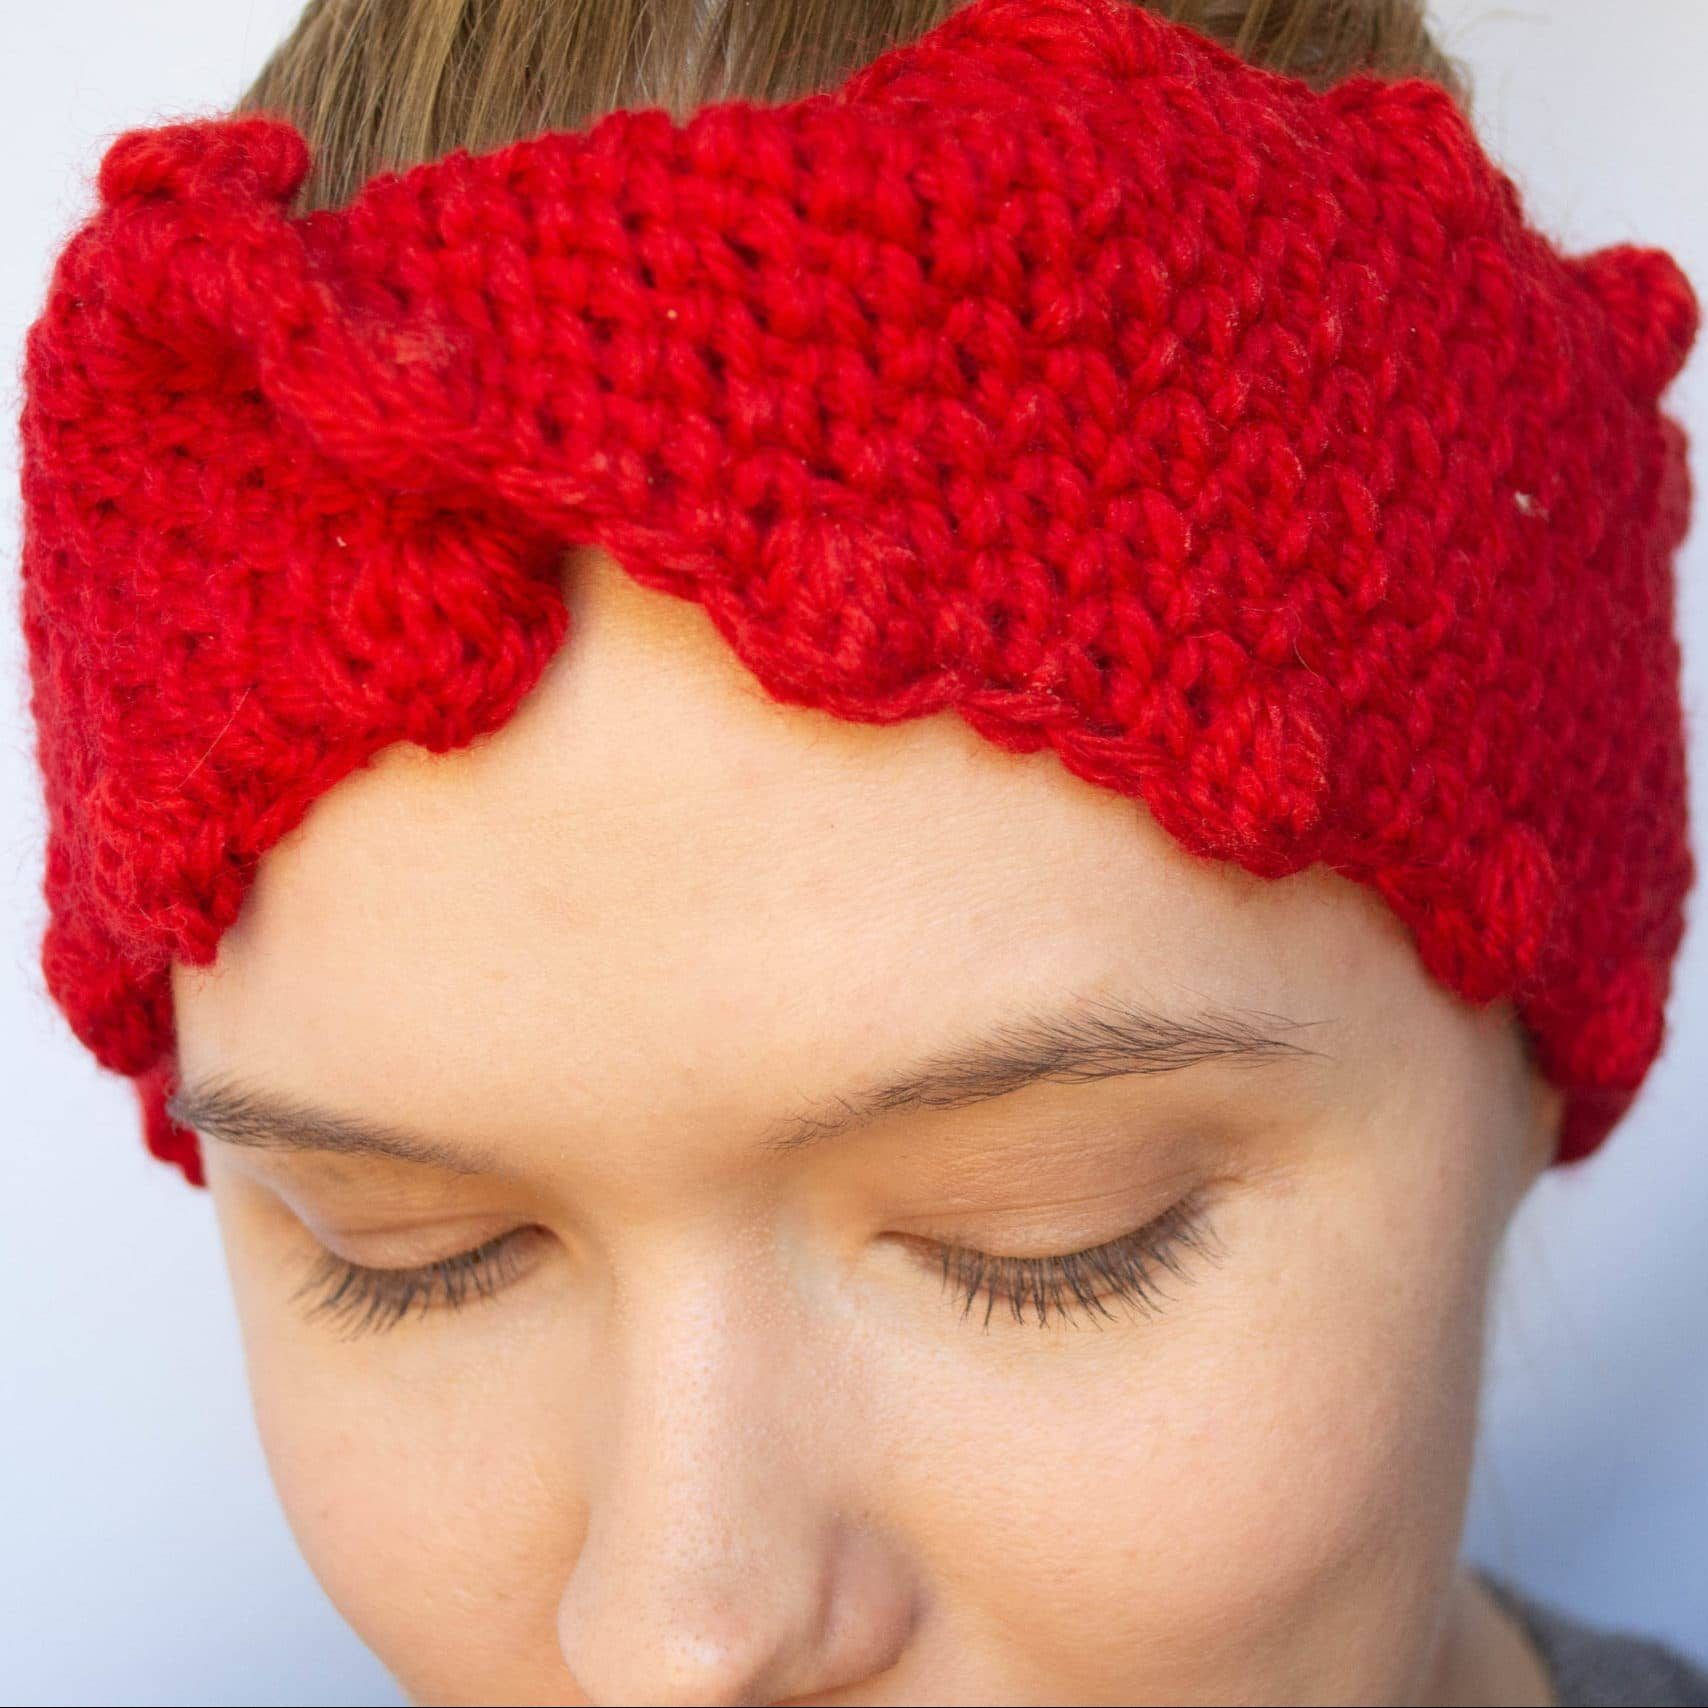 crochet headband or earwarmer.